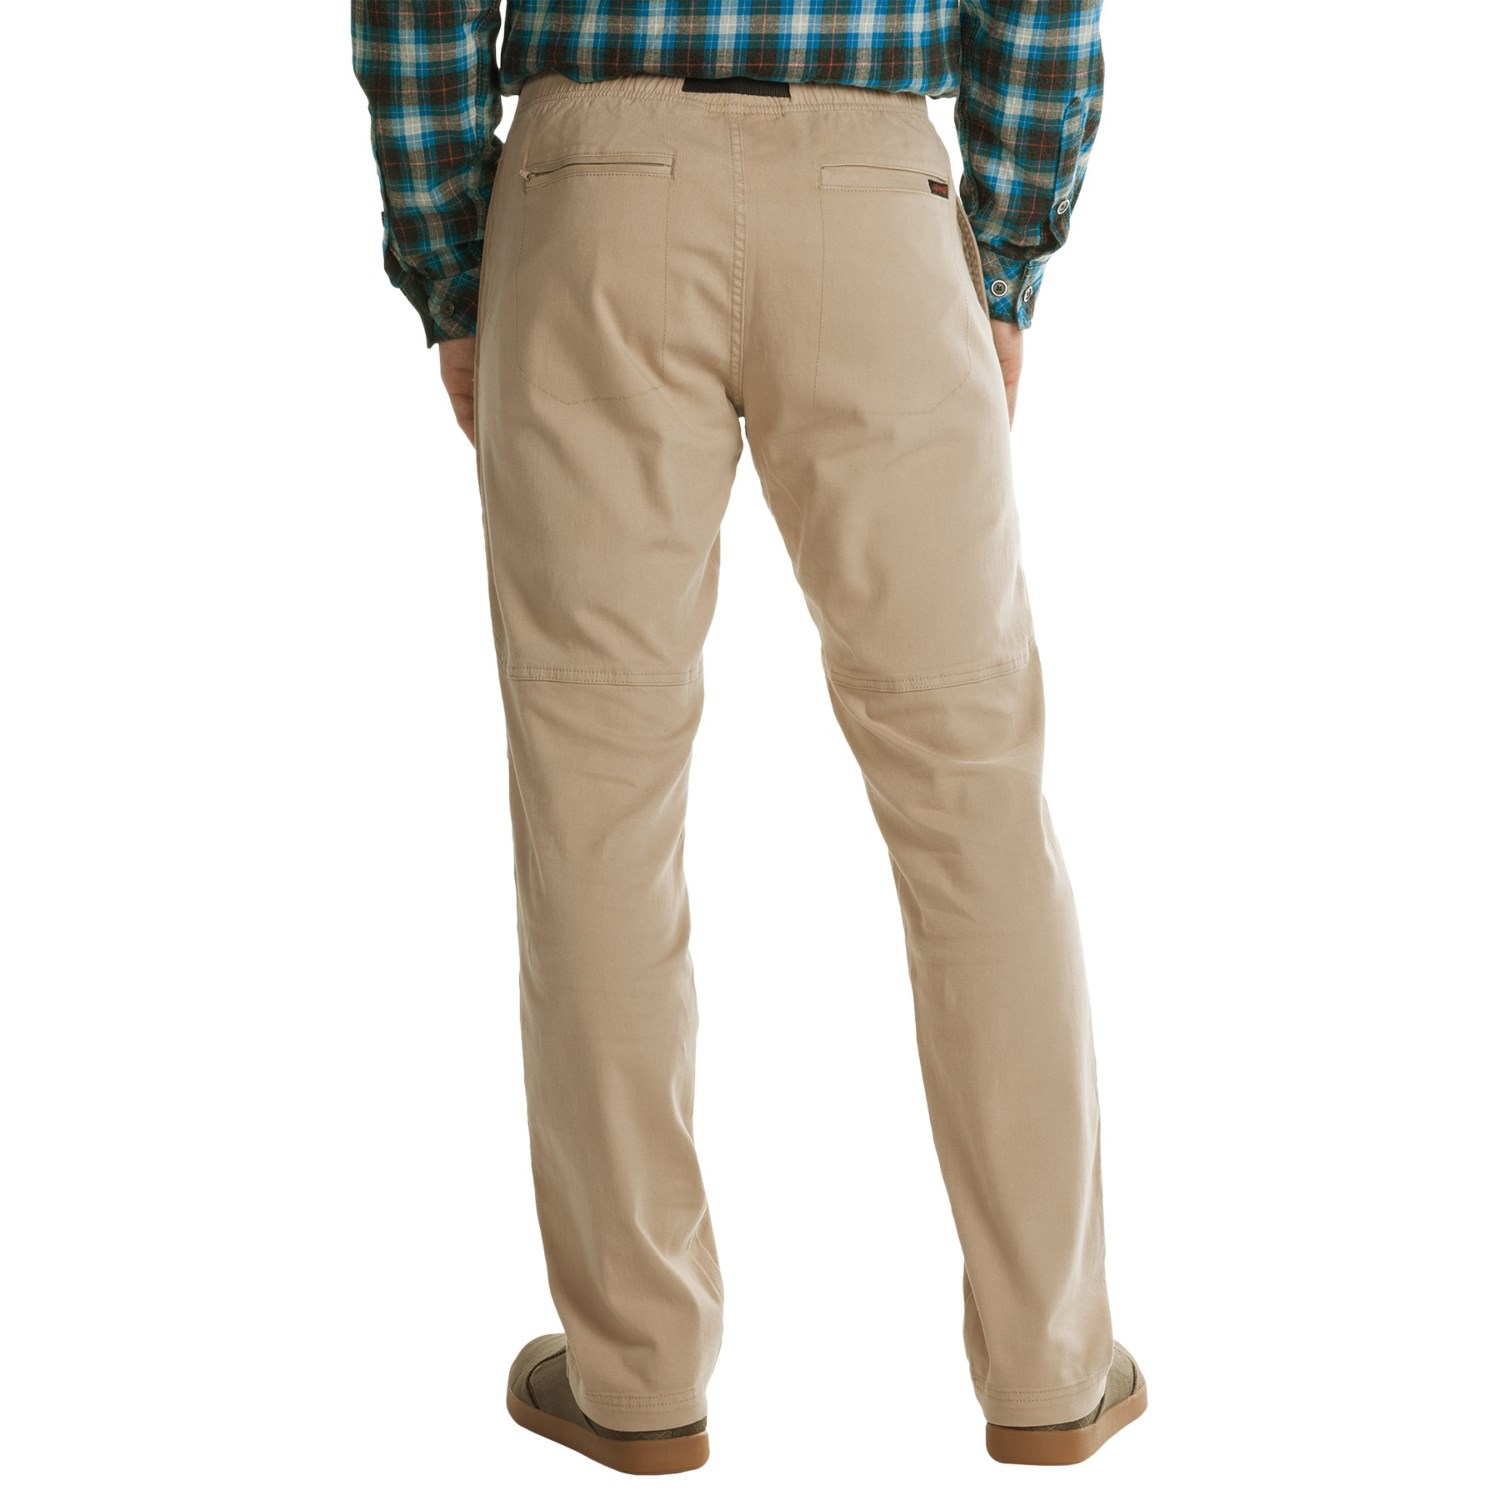 Enjoy free shipping and easy returns every day at Kohl's. Find great deals on Mens Elastic Waist Pants at Kohl's today!